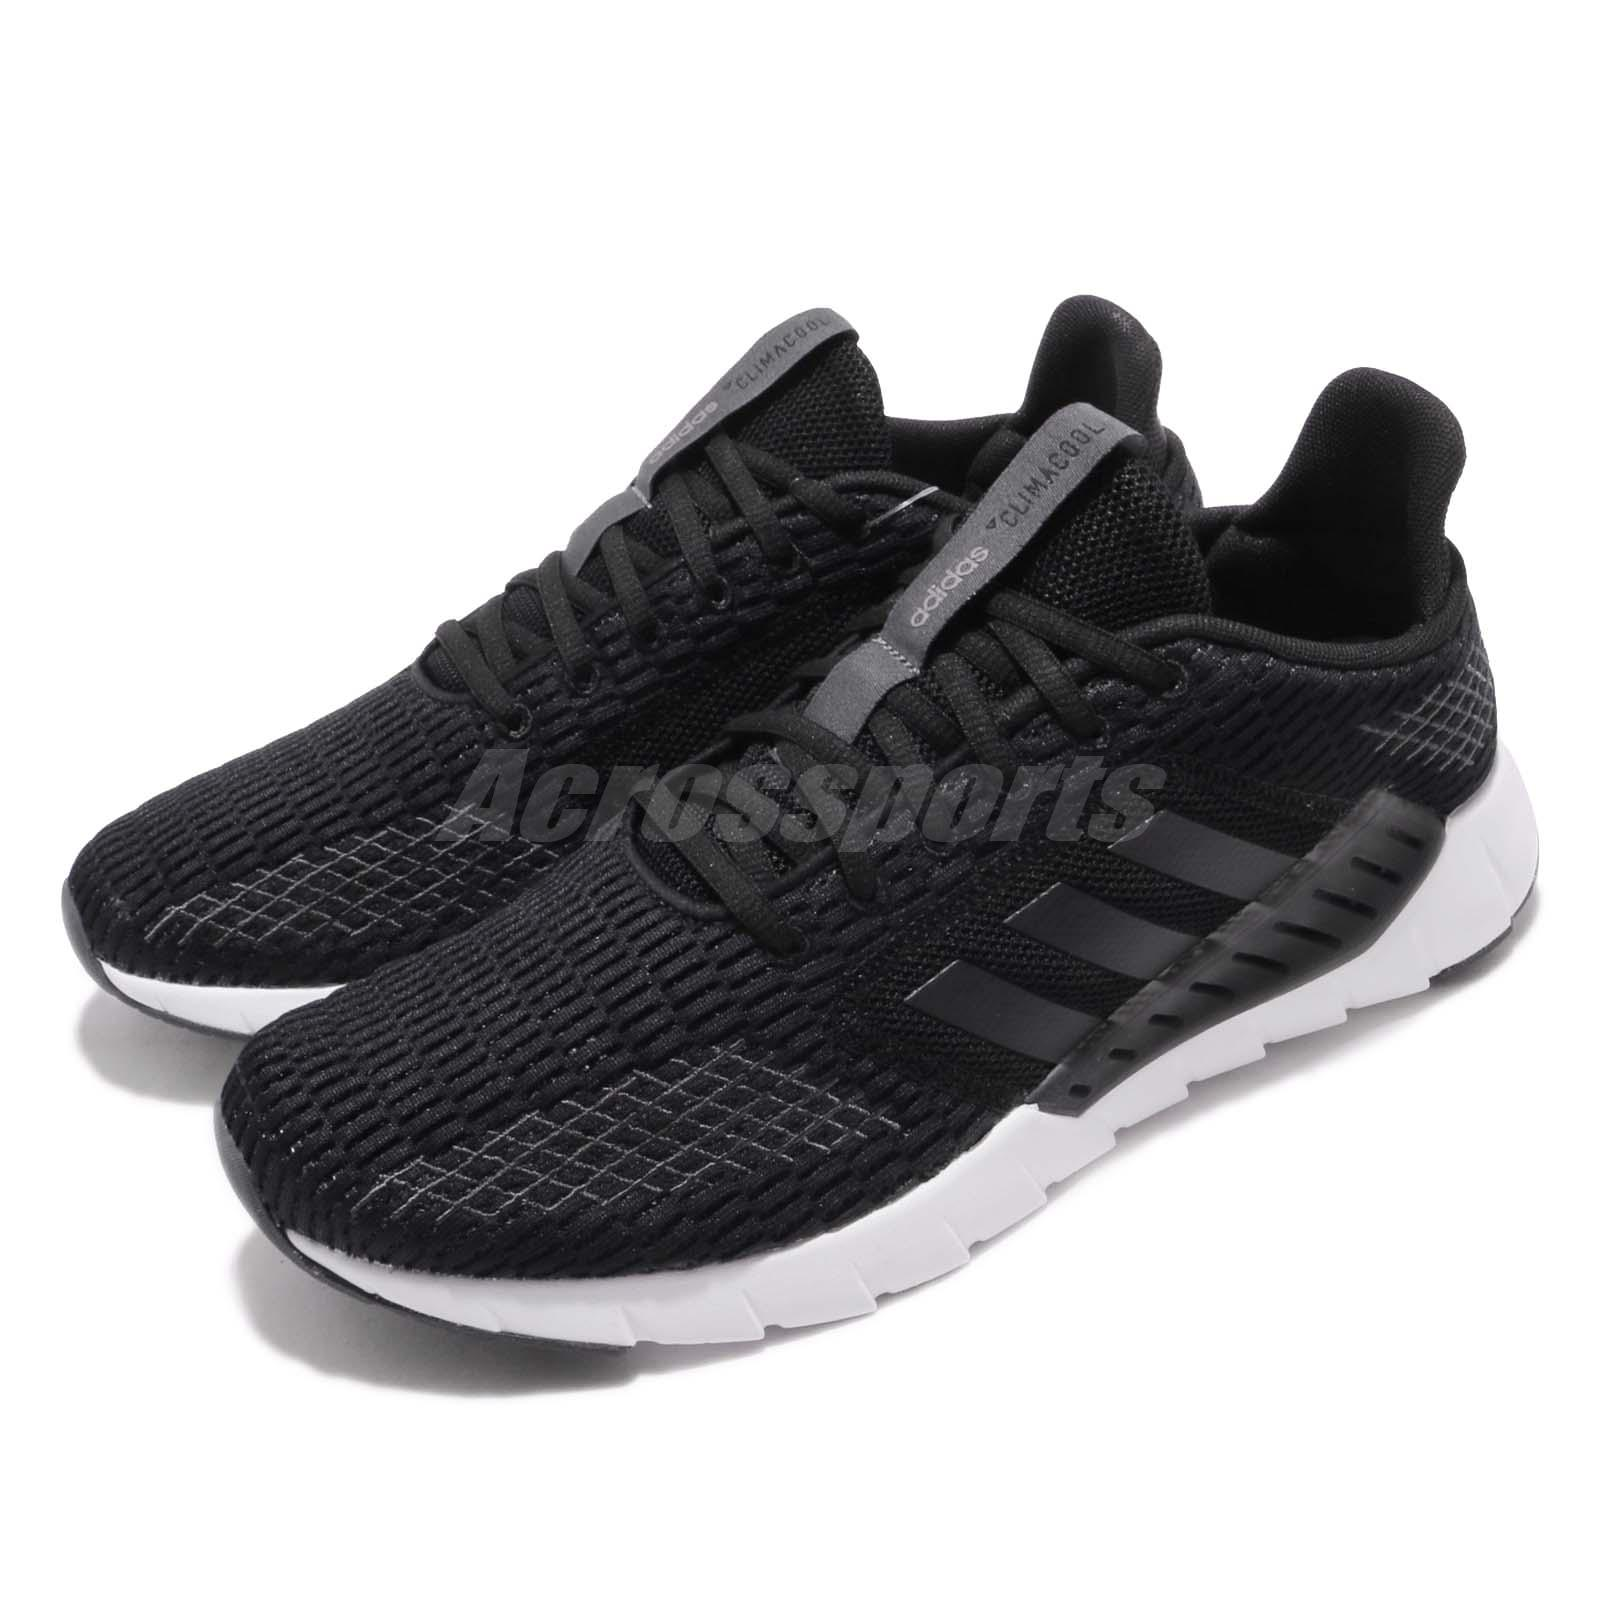 9f8e9233f6e Details about adidas Asweego CC Black Grey White Men Running Casual Shoes  Sneakers F36324